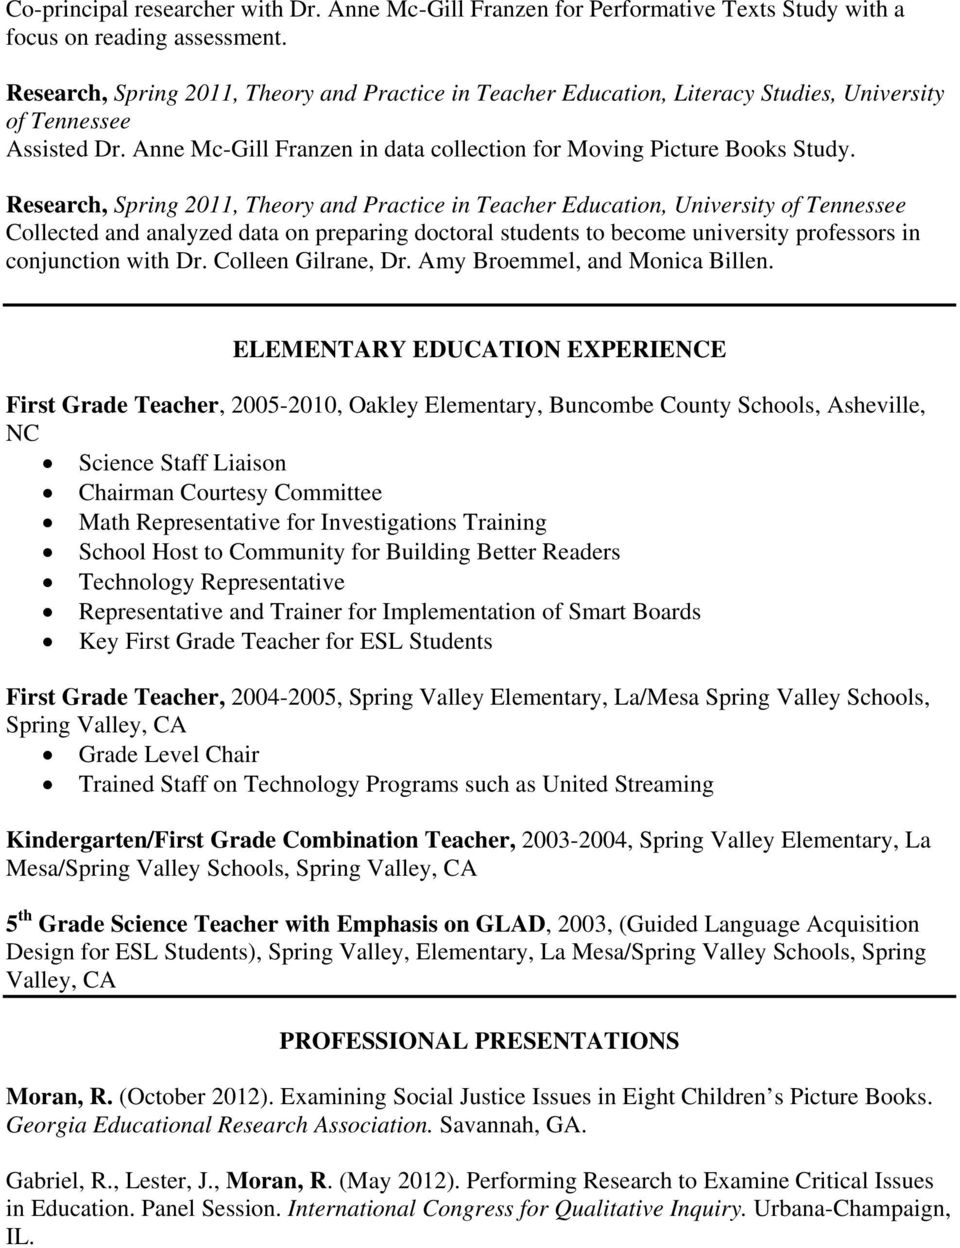 Research, Spring 2011, Theory and Practice in Teacher Education, University of Collected and analyzed data on preparing doctoral students to become university professors in conjunction with Dr.